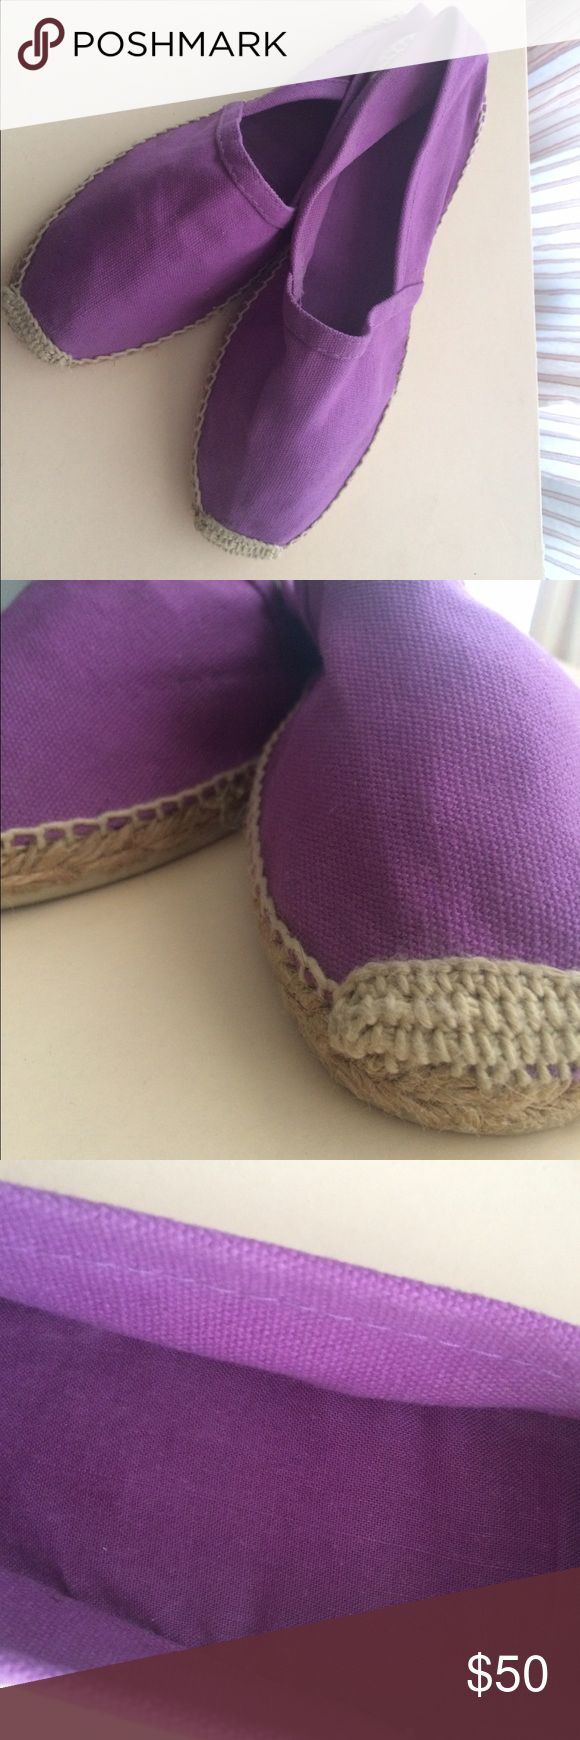 Espadrilles Made in France The Real deal espadrilles !! Gorgeous !! Made in France. Like new condition inside and out. Super cute relaxed but trendy summer shoe. Lavender purple canvas with a rubber sole size 38. Make an Offer! Cousu Main Shoes Espadrilles